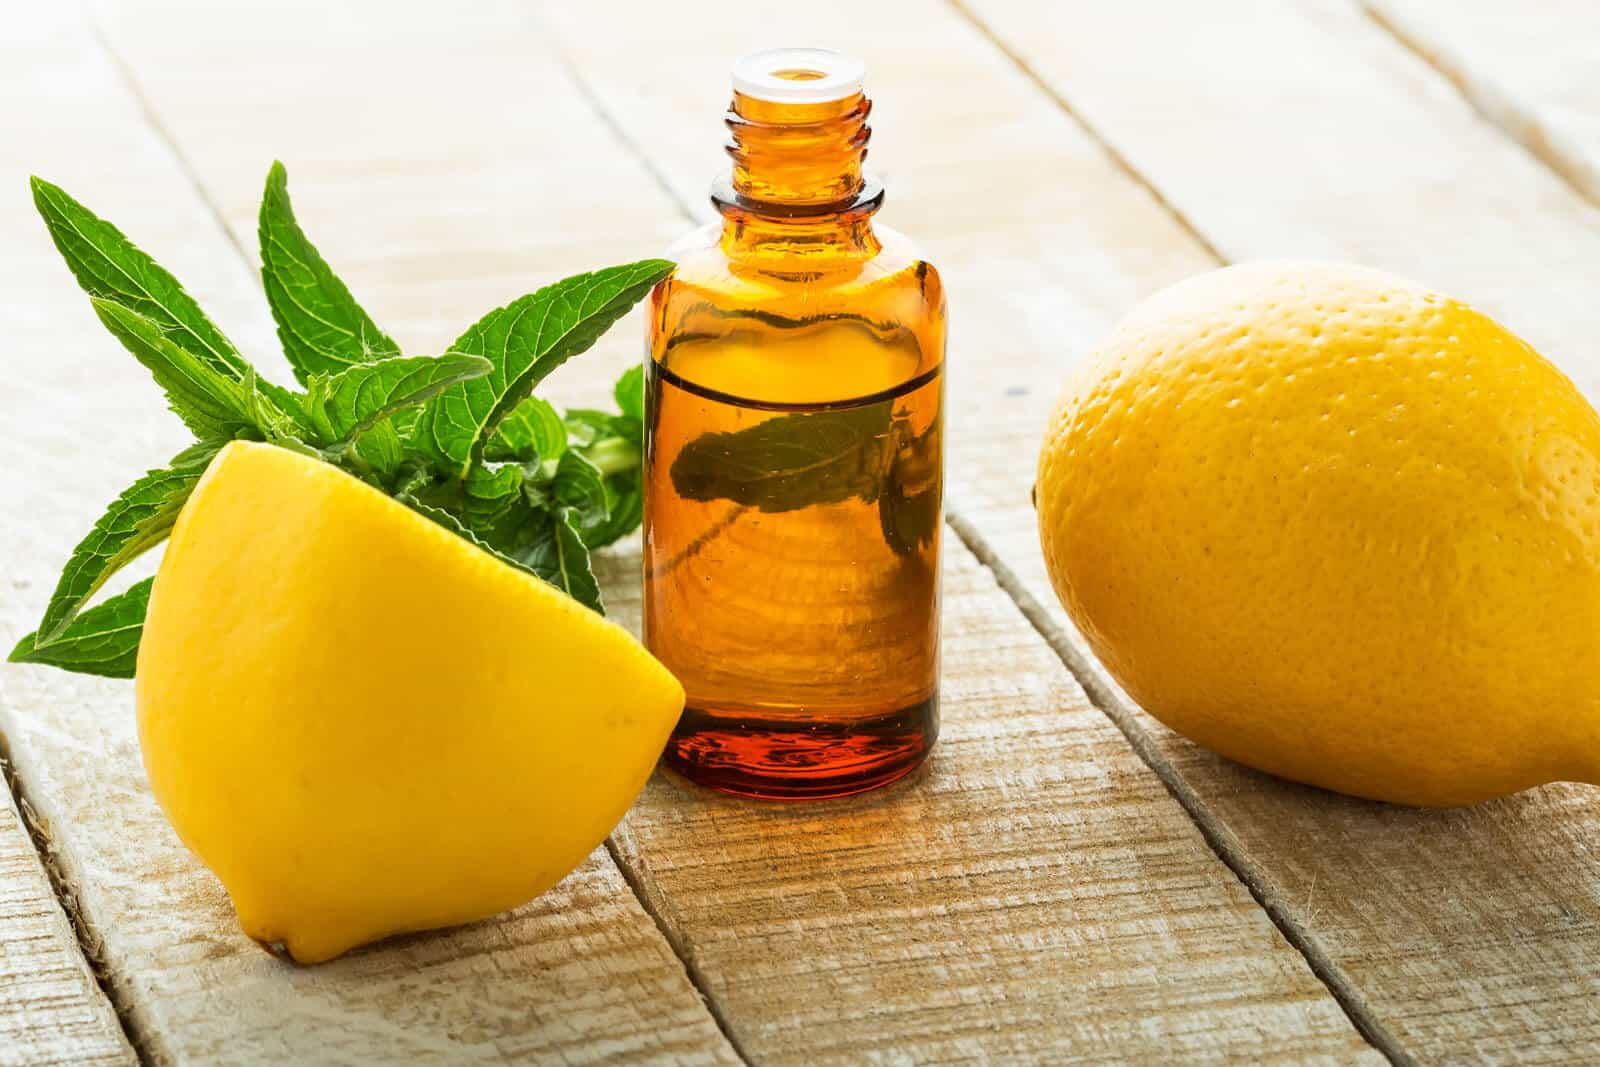 The Top 6 Proven Benefits and Uses of Lemon Essential Oil